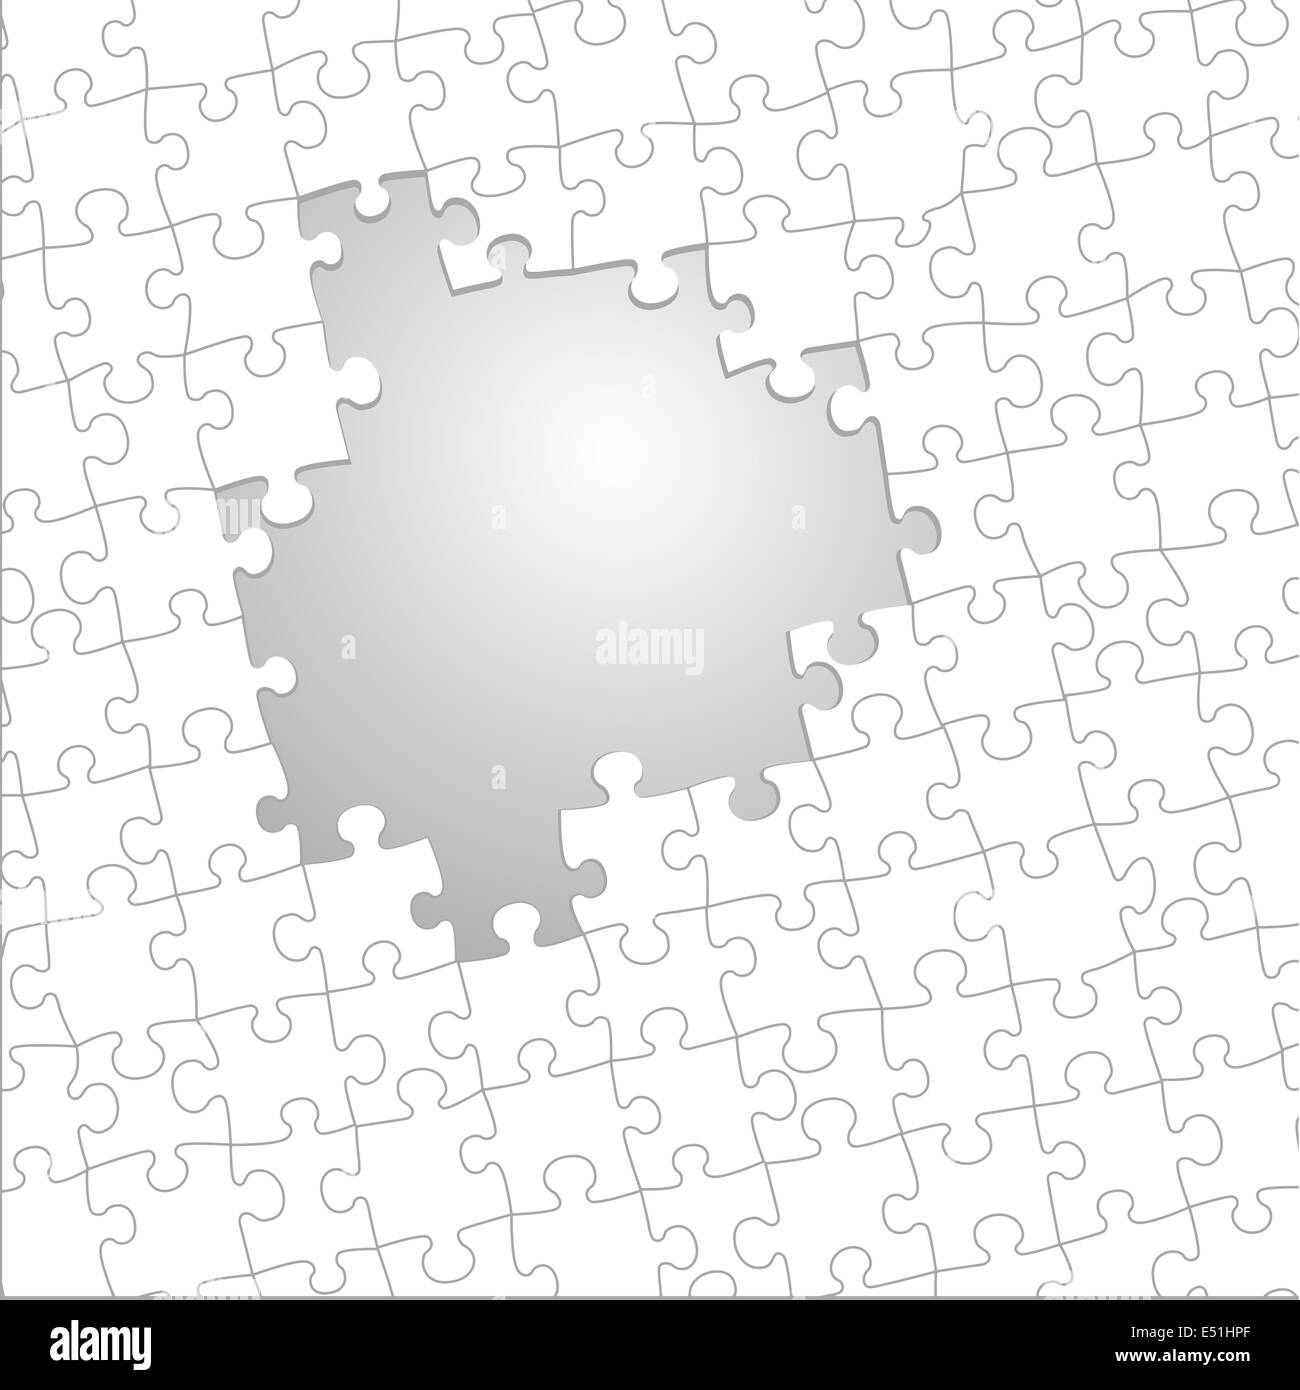 Jigsaw Puzzle Infographic Template Stock Photos